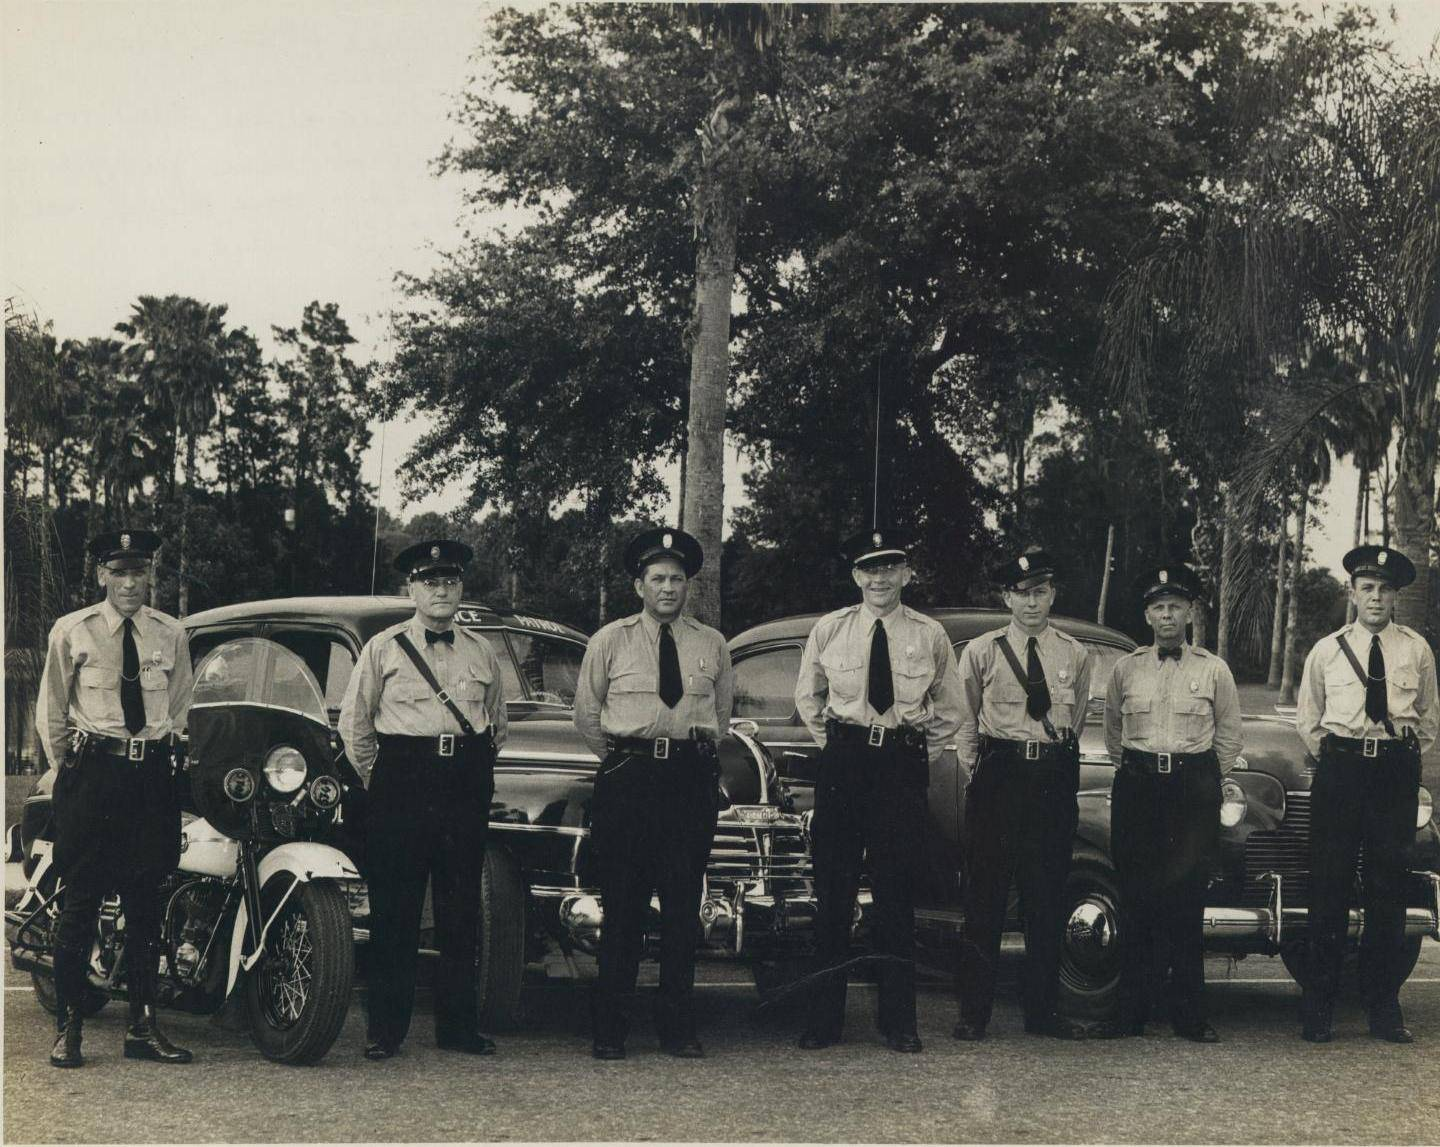 Throwback Thursday- 1941 Police Department in Florida